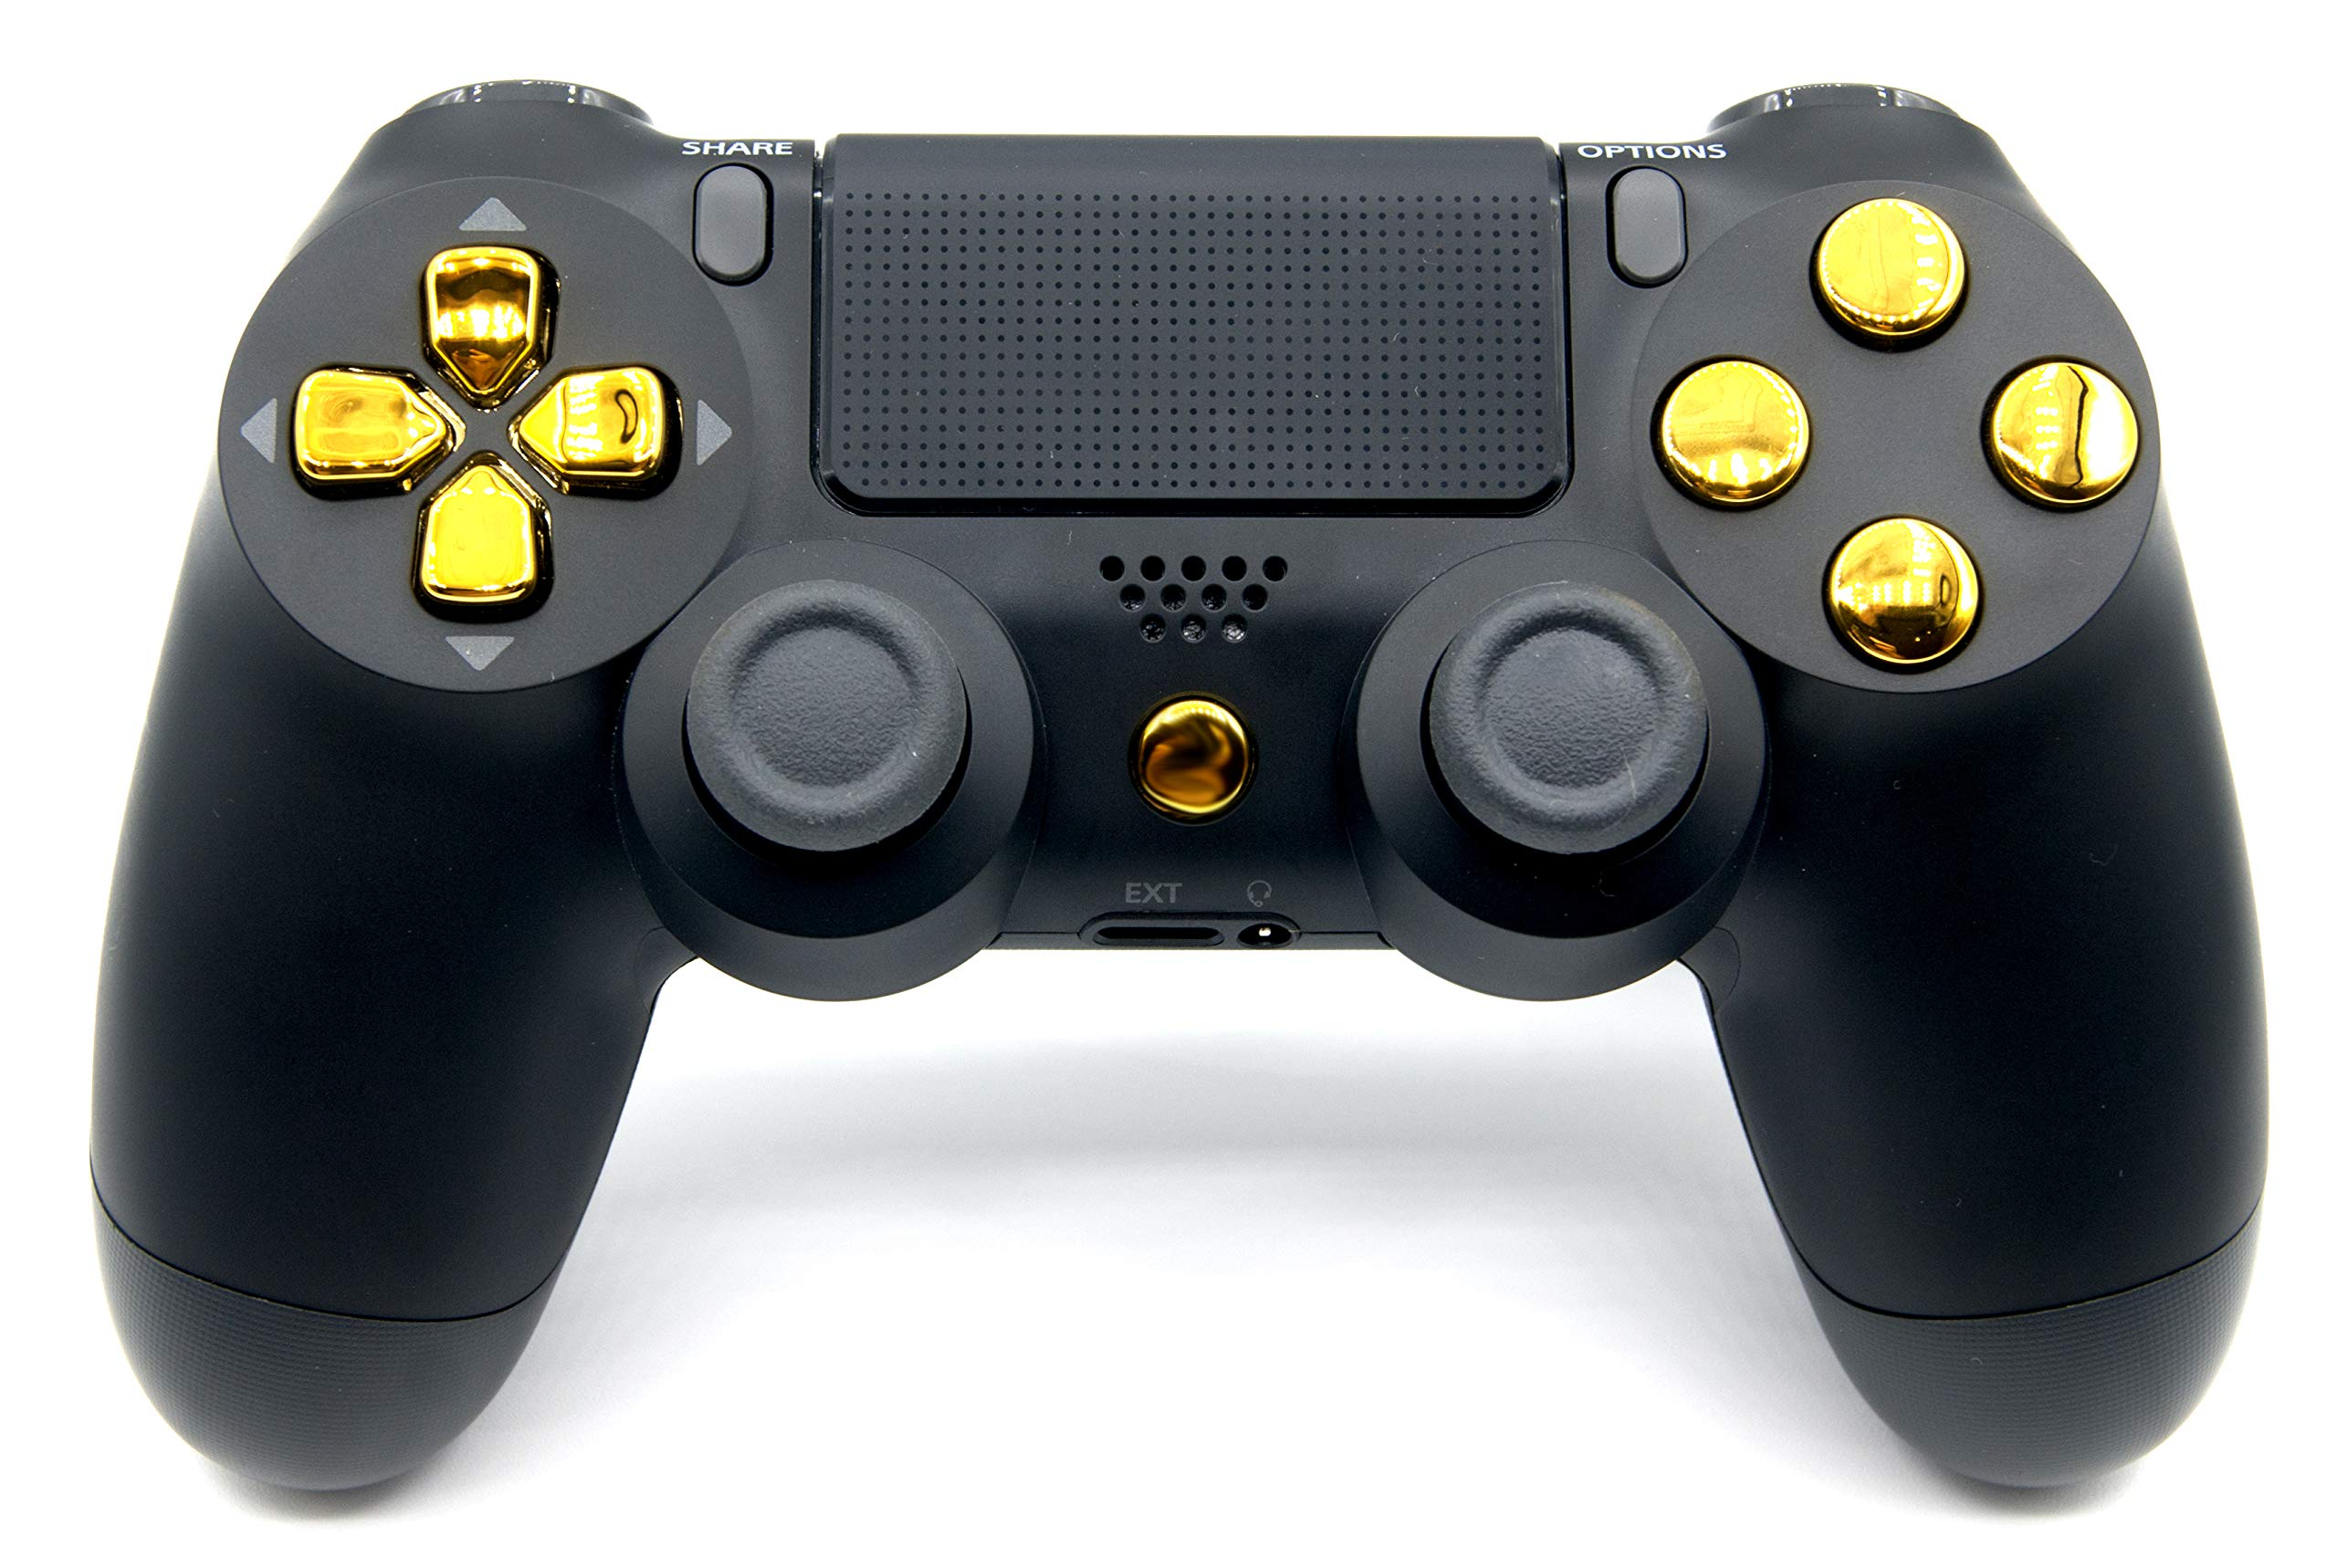 Black/Gold PlayStation 4 V2 (new version) Rapid Fire Modded Controller for COD Black Ops3, Infinity Warfare, AW, Destiny, Battlefield: Quick Scope, Drop Shot, Auto Run, Sniped Breath, Mimic, More